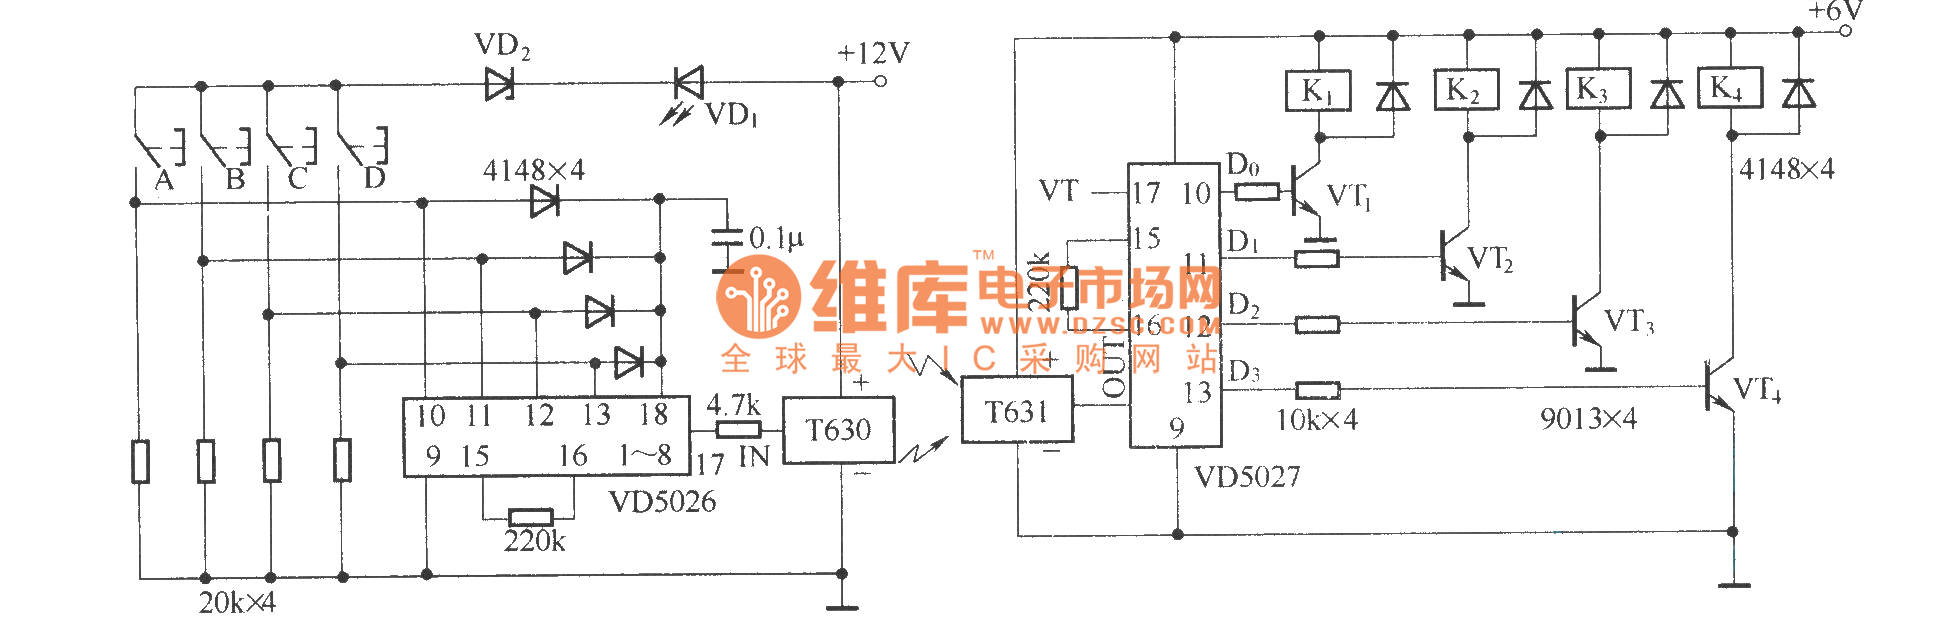 hight resolution of volume remote control circuit diagram automotivecircuit circuit circuit diagram of remote control circuit through rf without